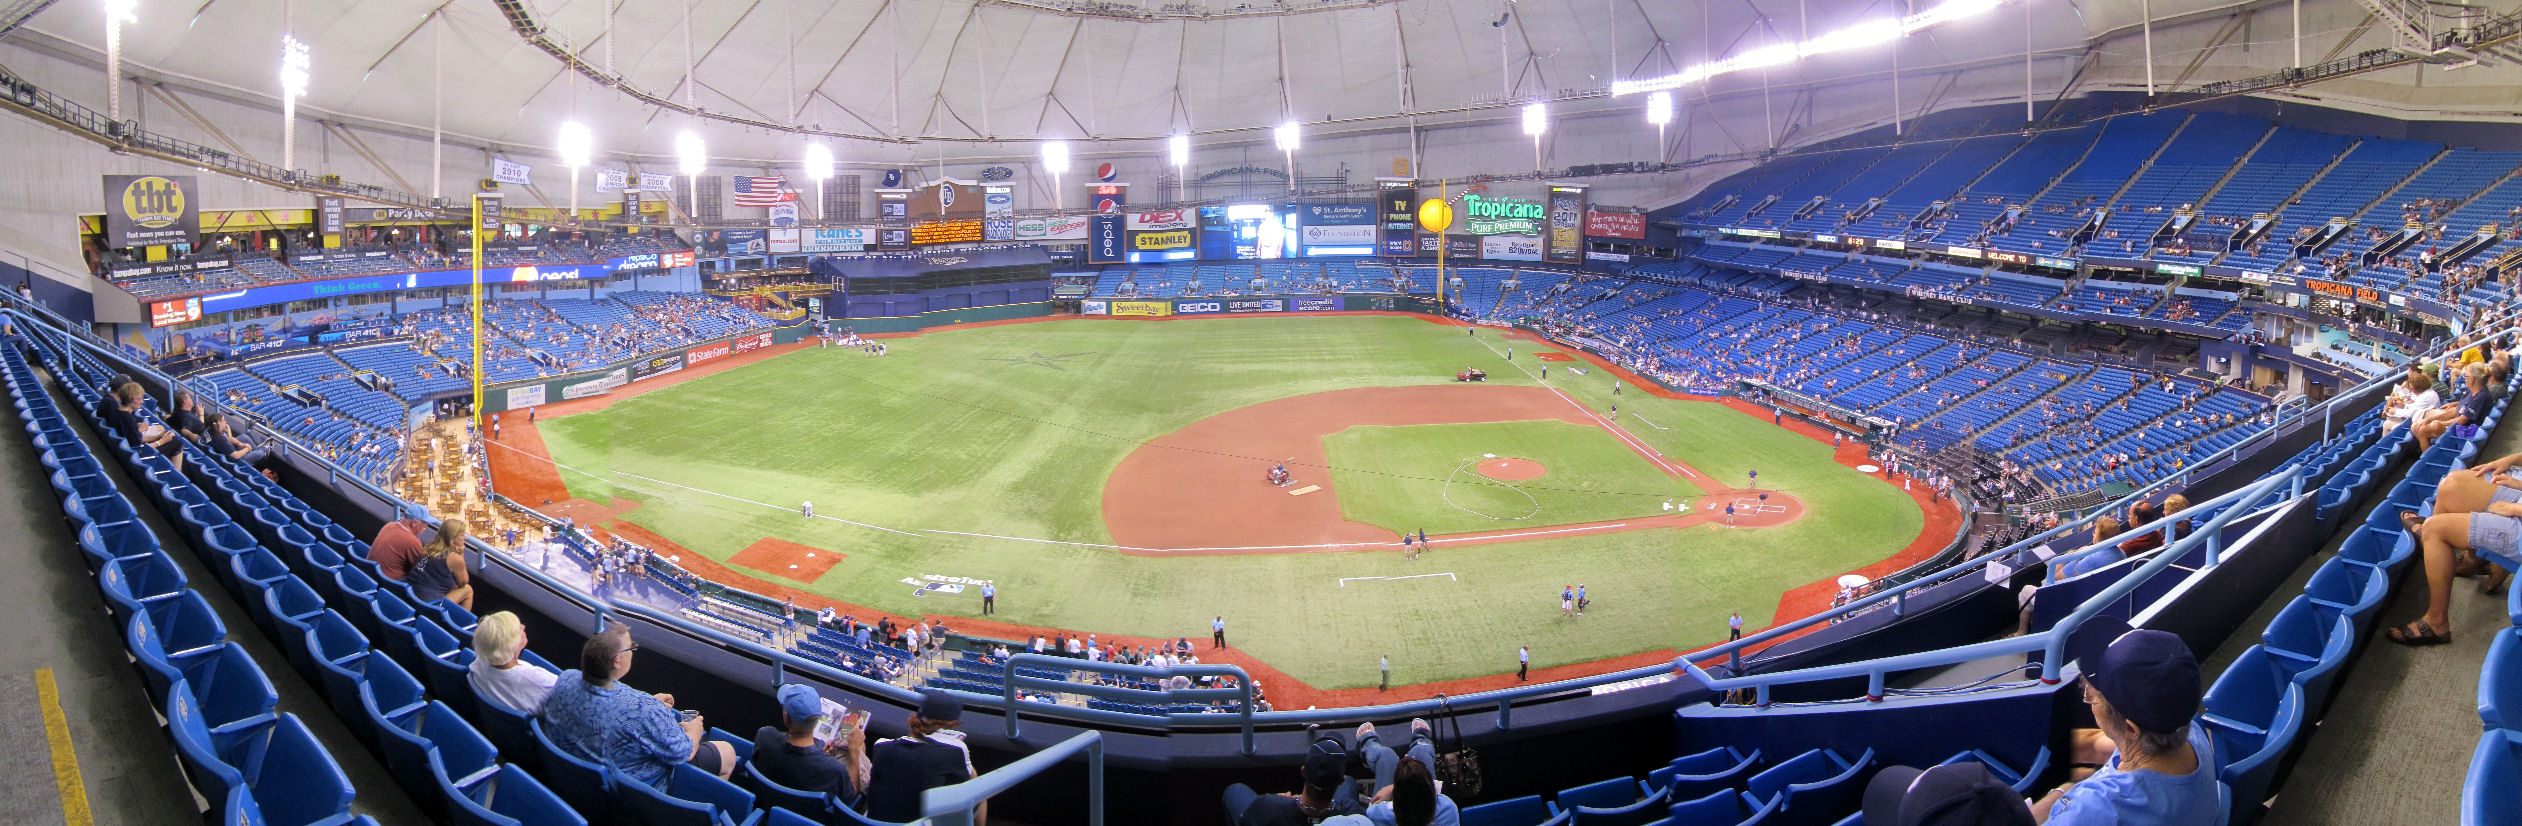 Tropicana Field, the home to the Tampa Bay Rays has seen a decline in attendance over the past decade.